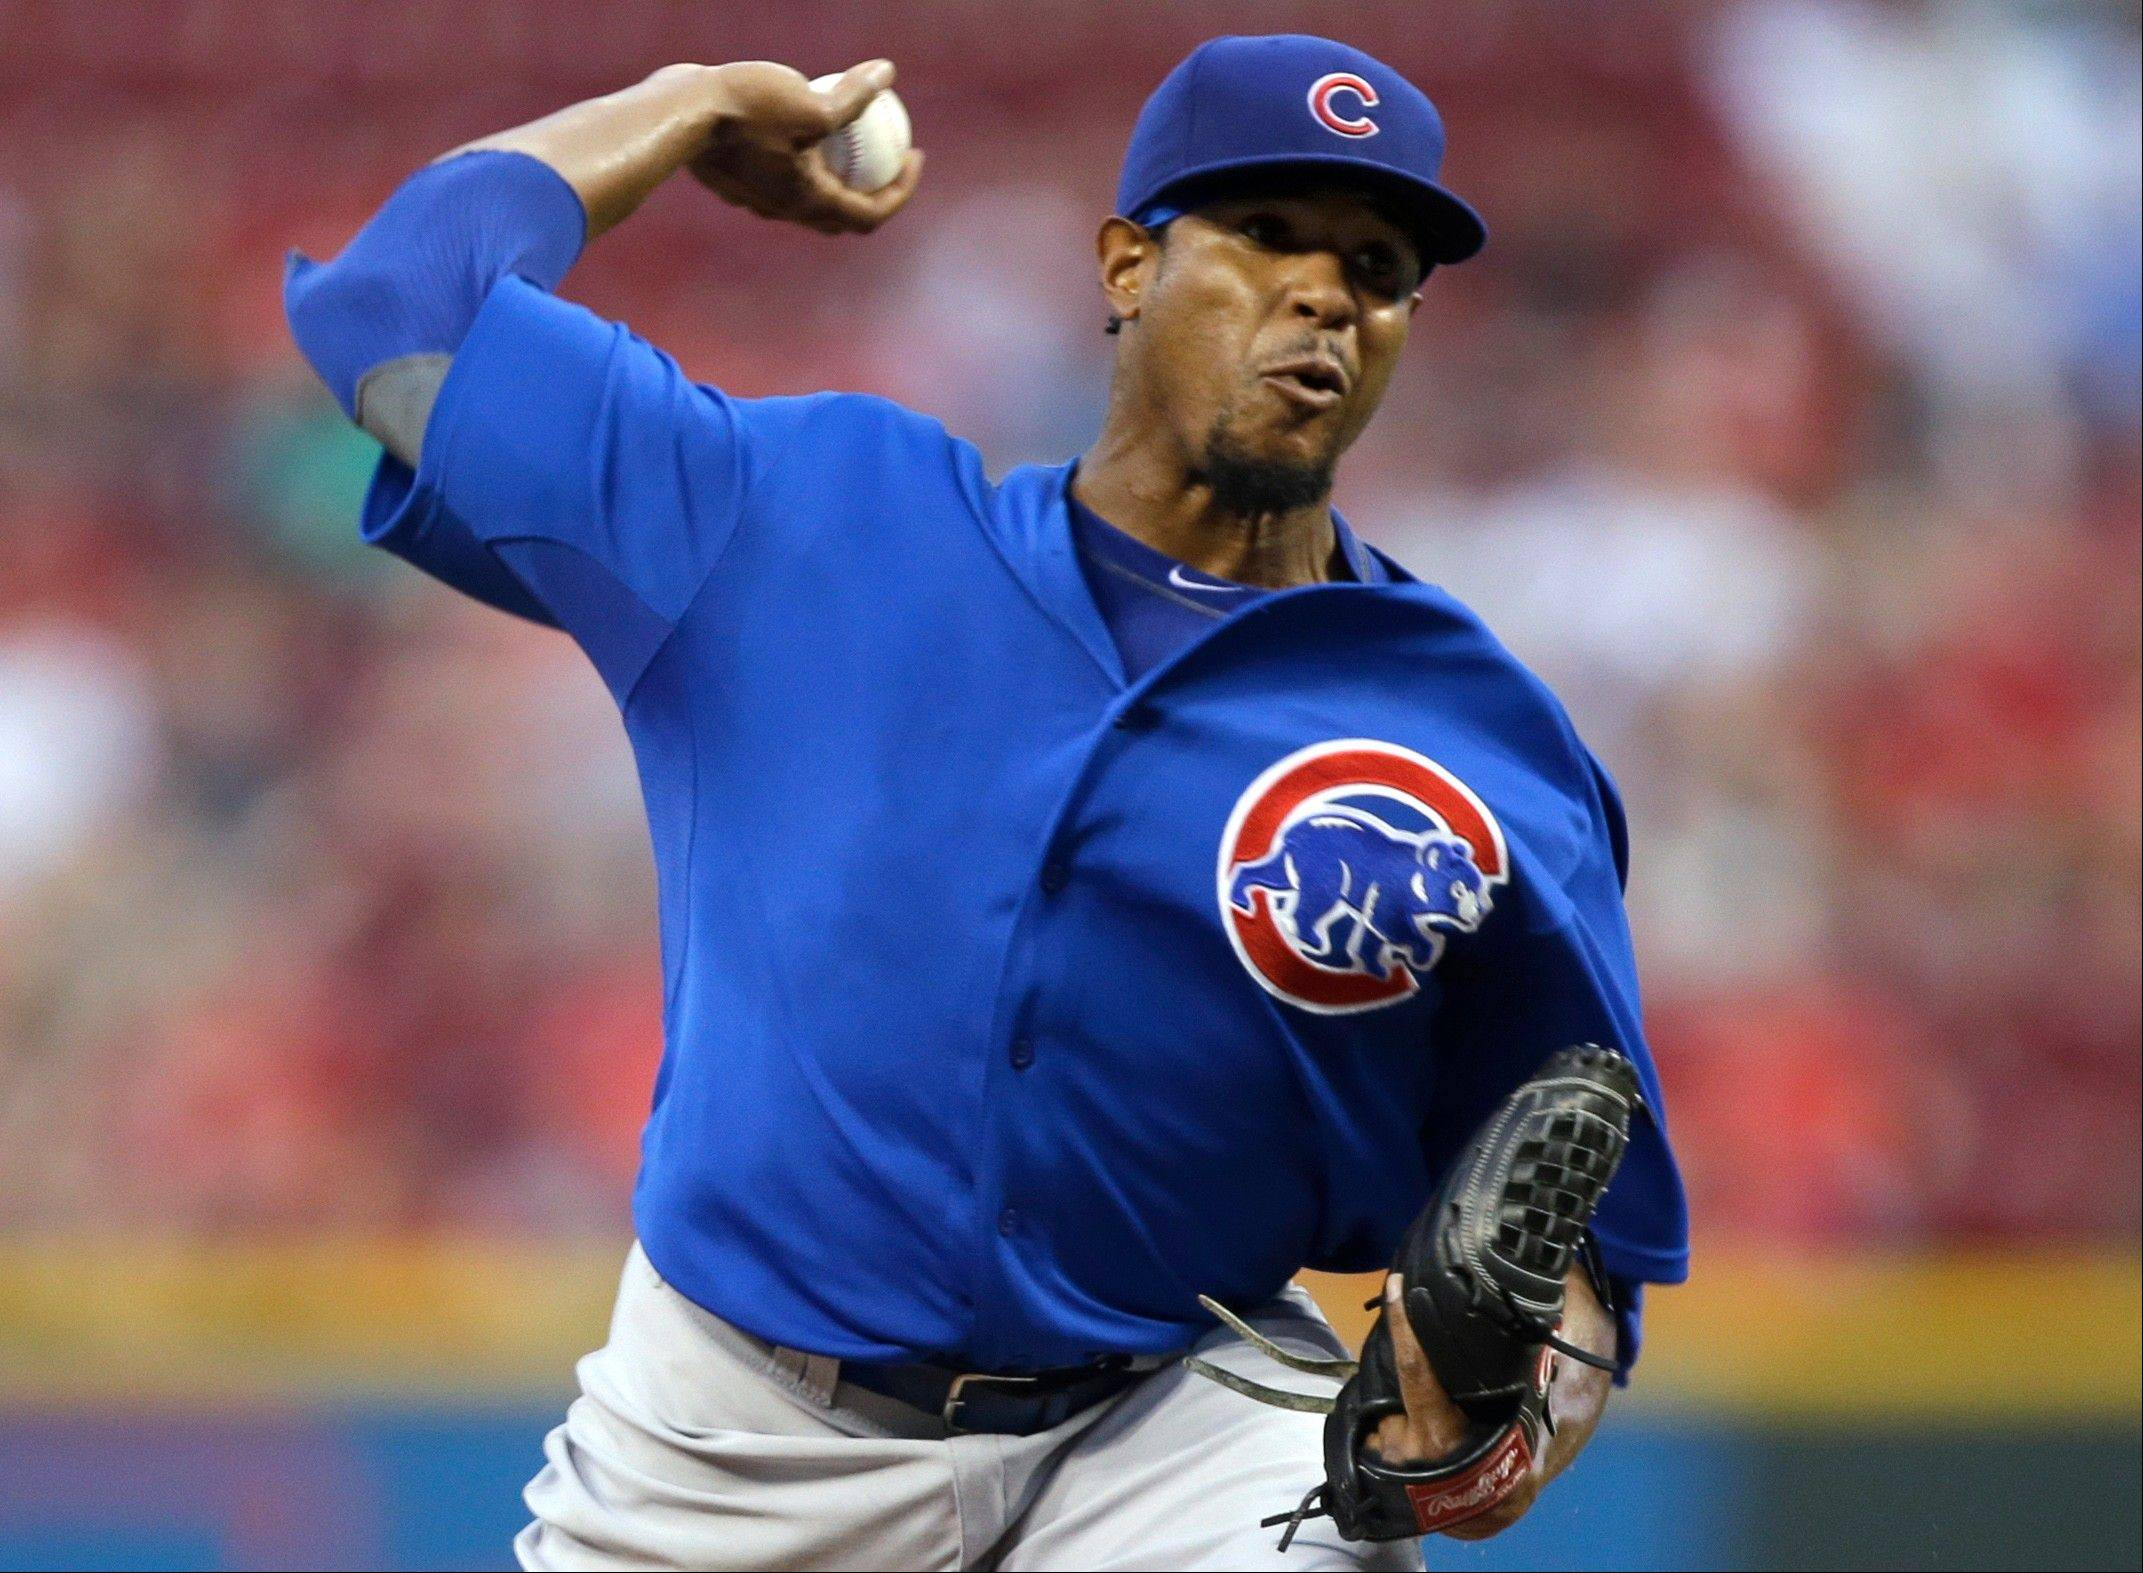 Cubs starting pitcher Edwin Jackson got the victory over the Reds on Tuesday night and also helped his own cause by hitting a home run.